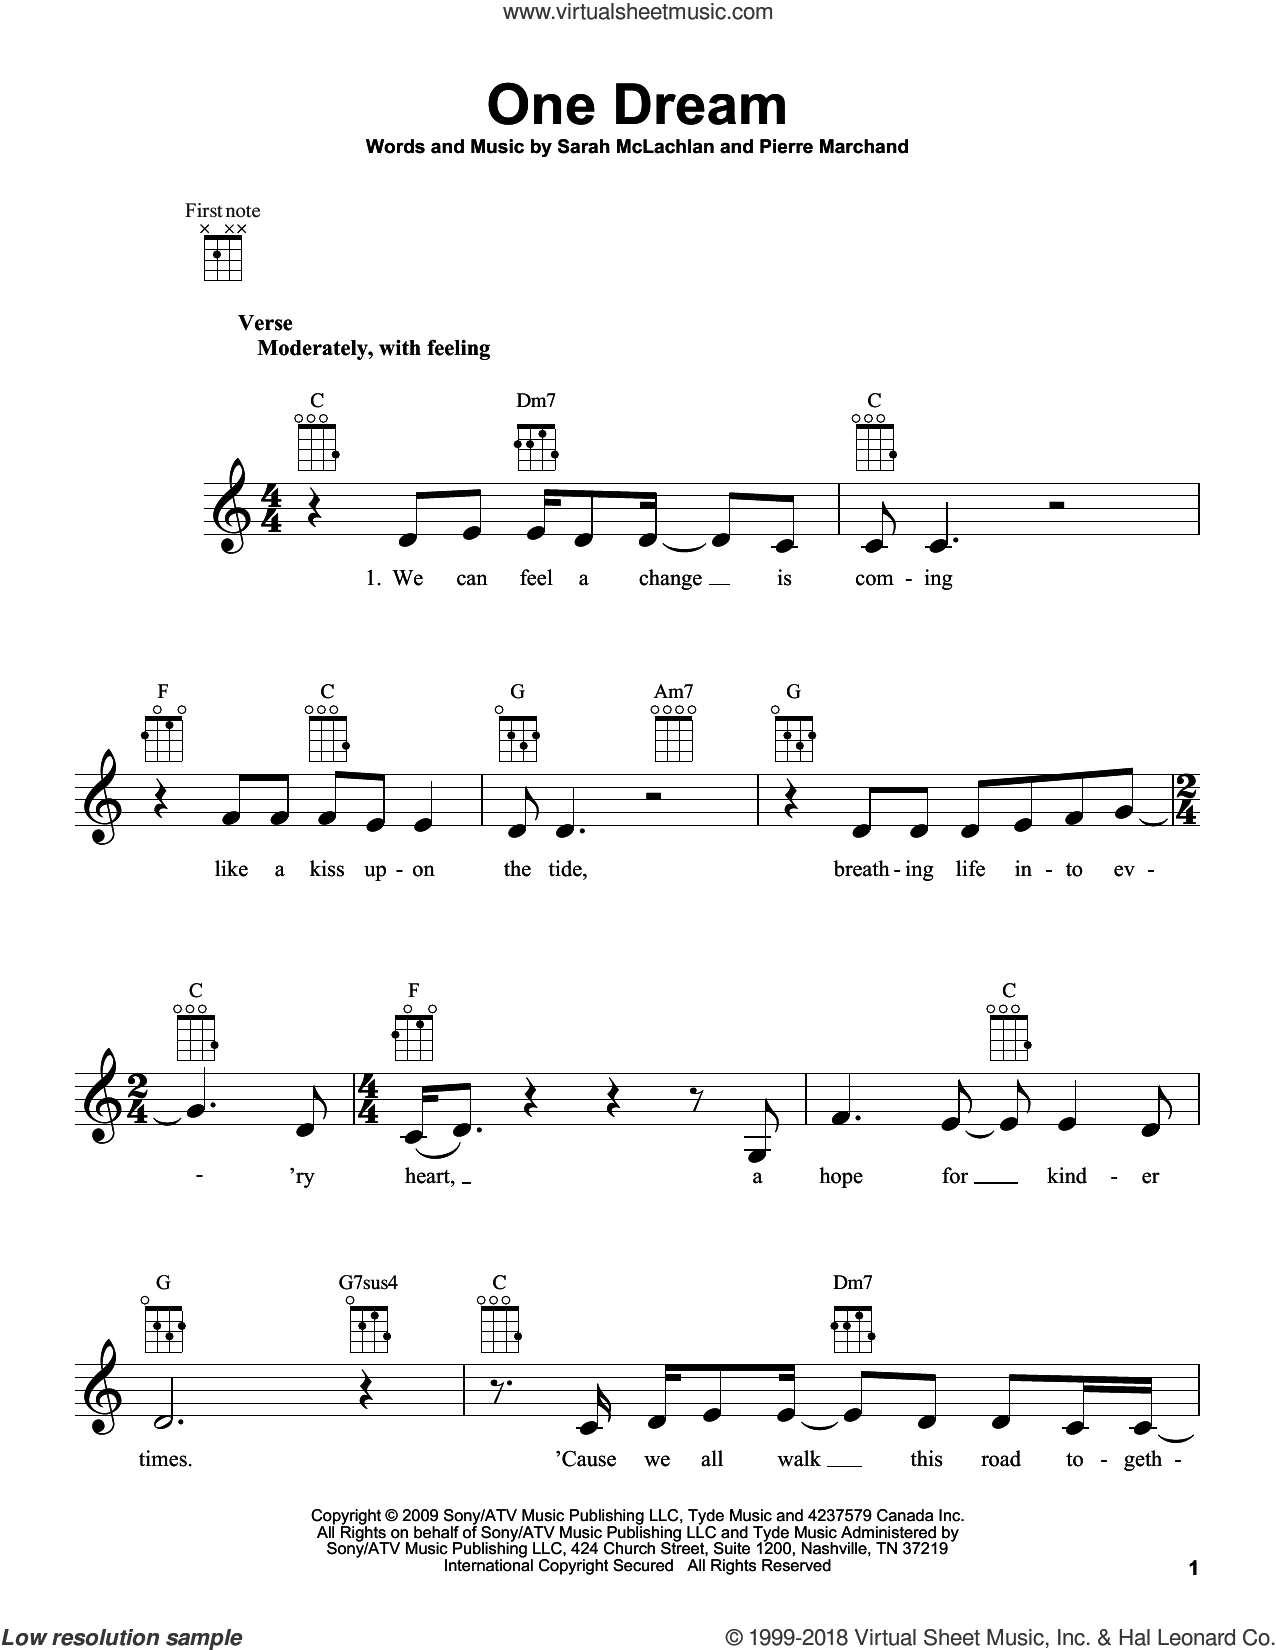 One Dream sheet music for ukulele by Sarah McLachlan and Pierre Marchand, intermediate skill level